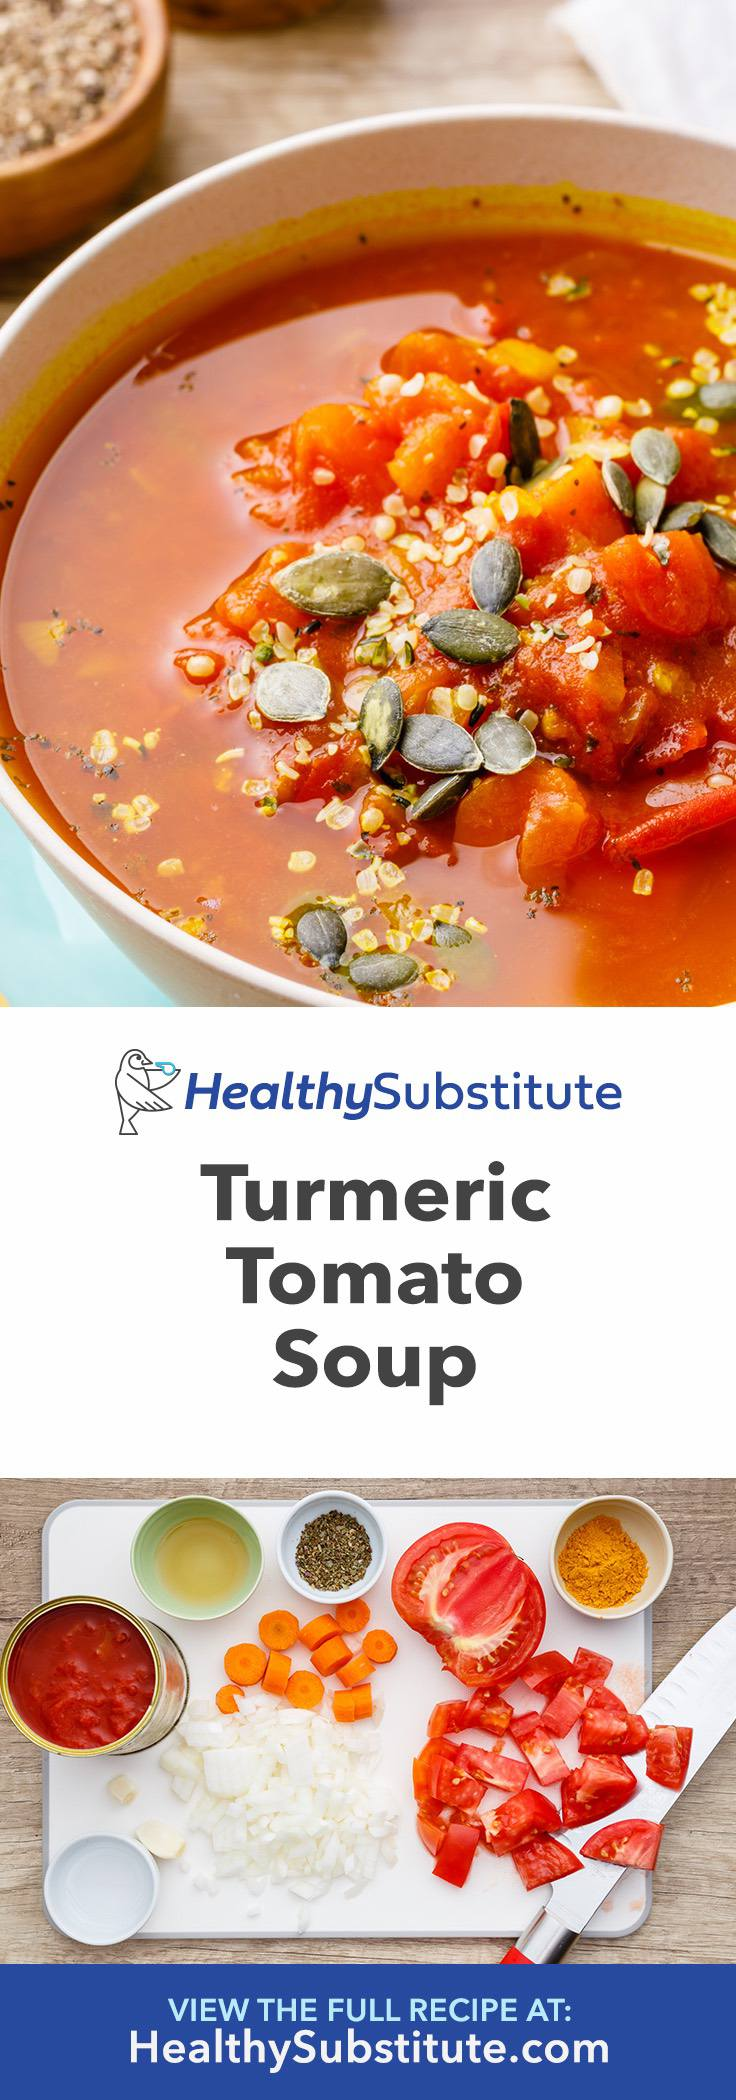 How to Make Turmeric Tomato Soup for Detox and Cleansing